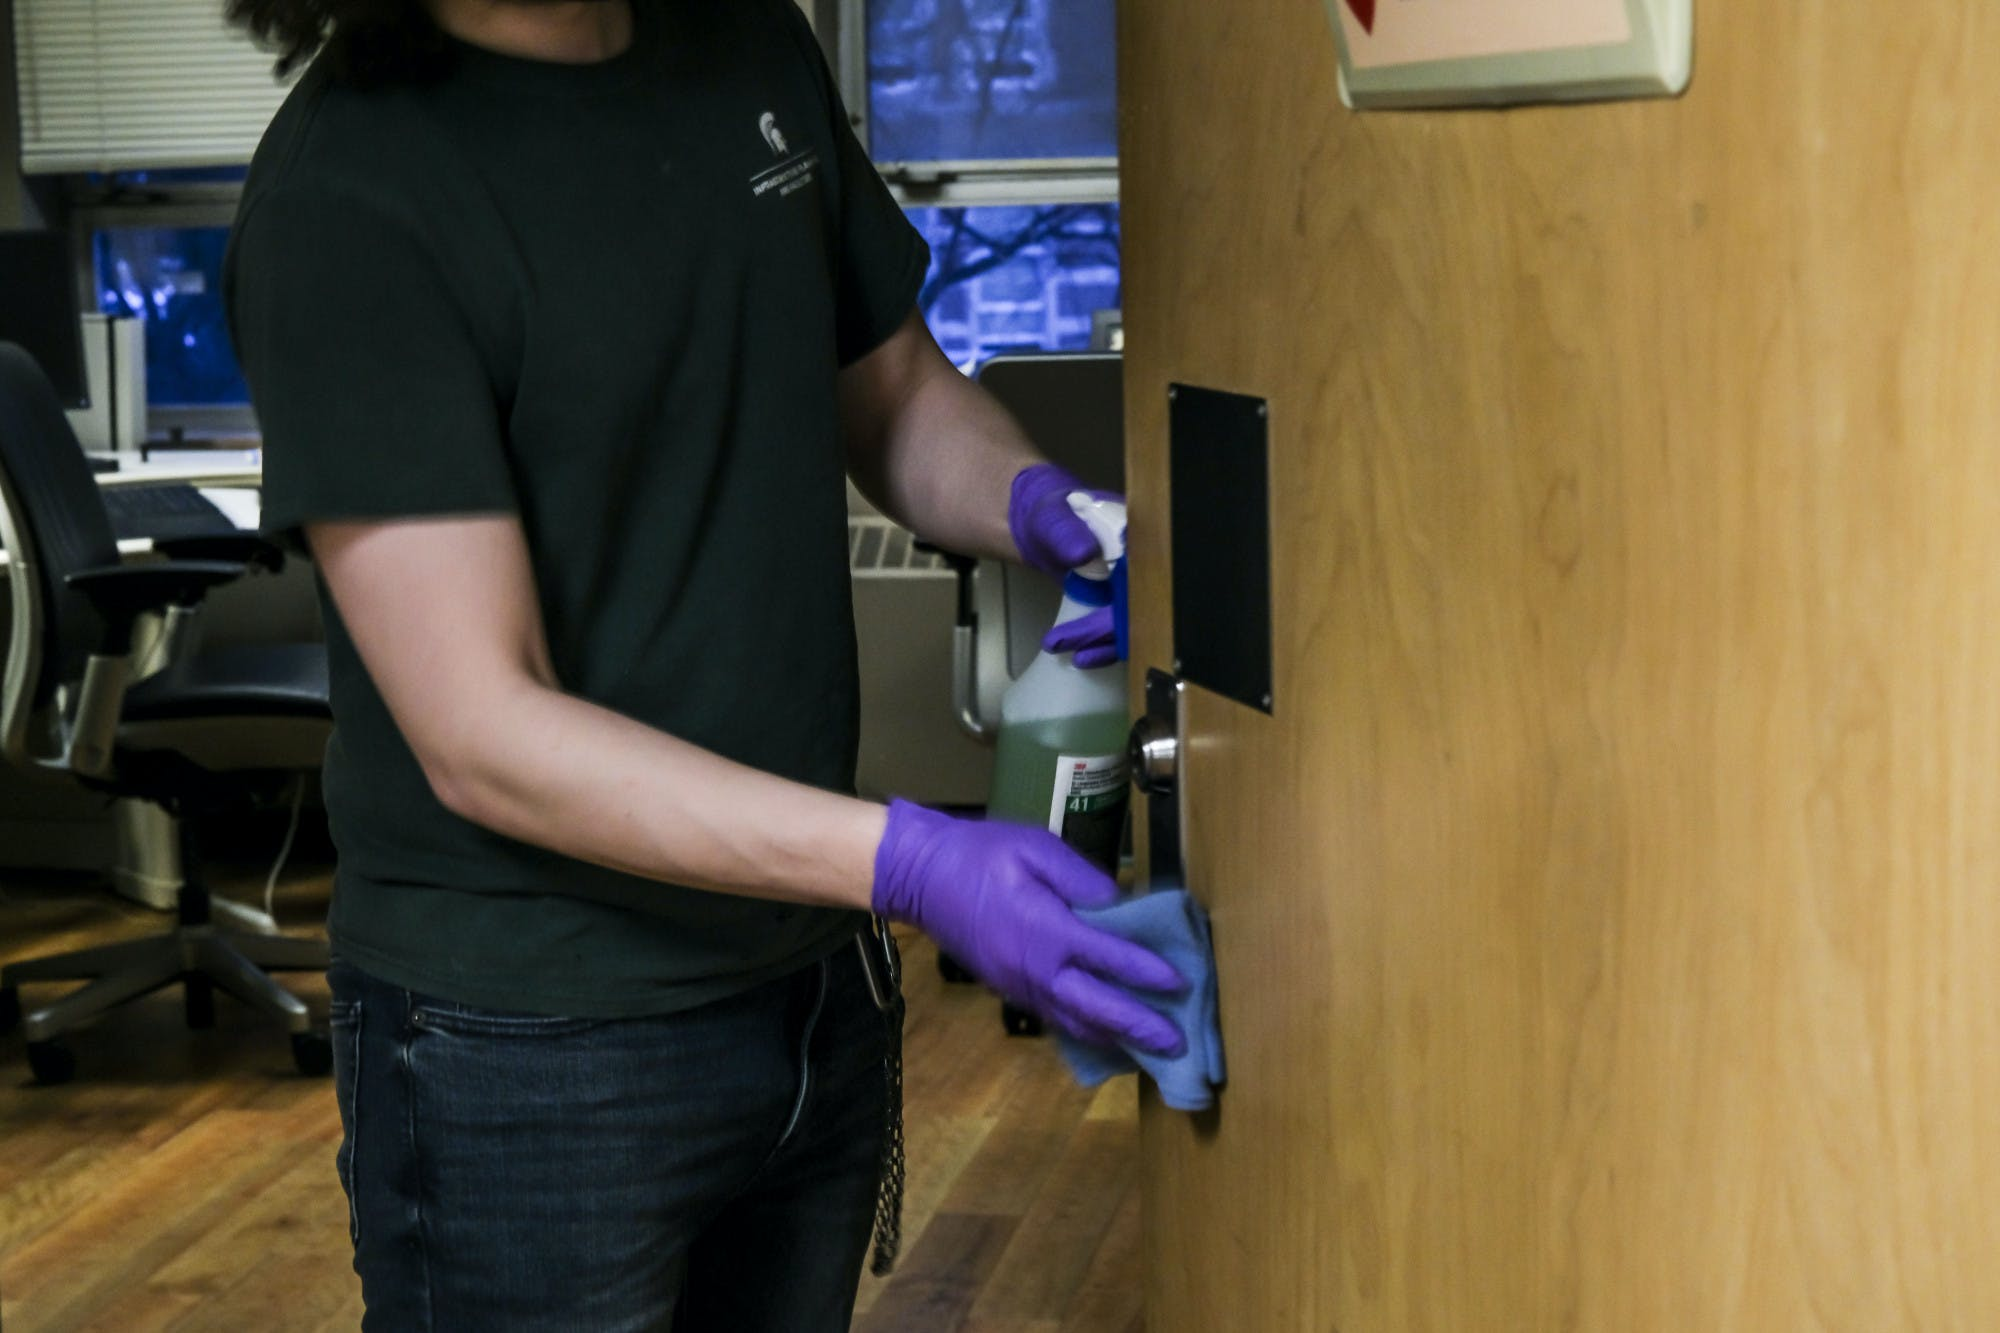 A person wearing purple medical gloves uses a rag to wipe down a doorhandle while holding a cleaning spray. The person's face is not visible.